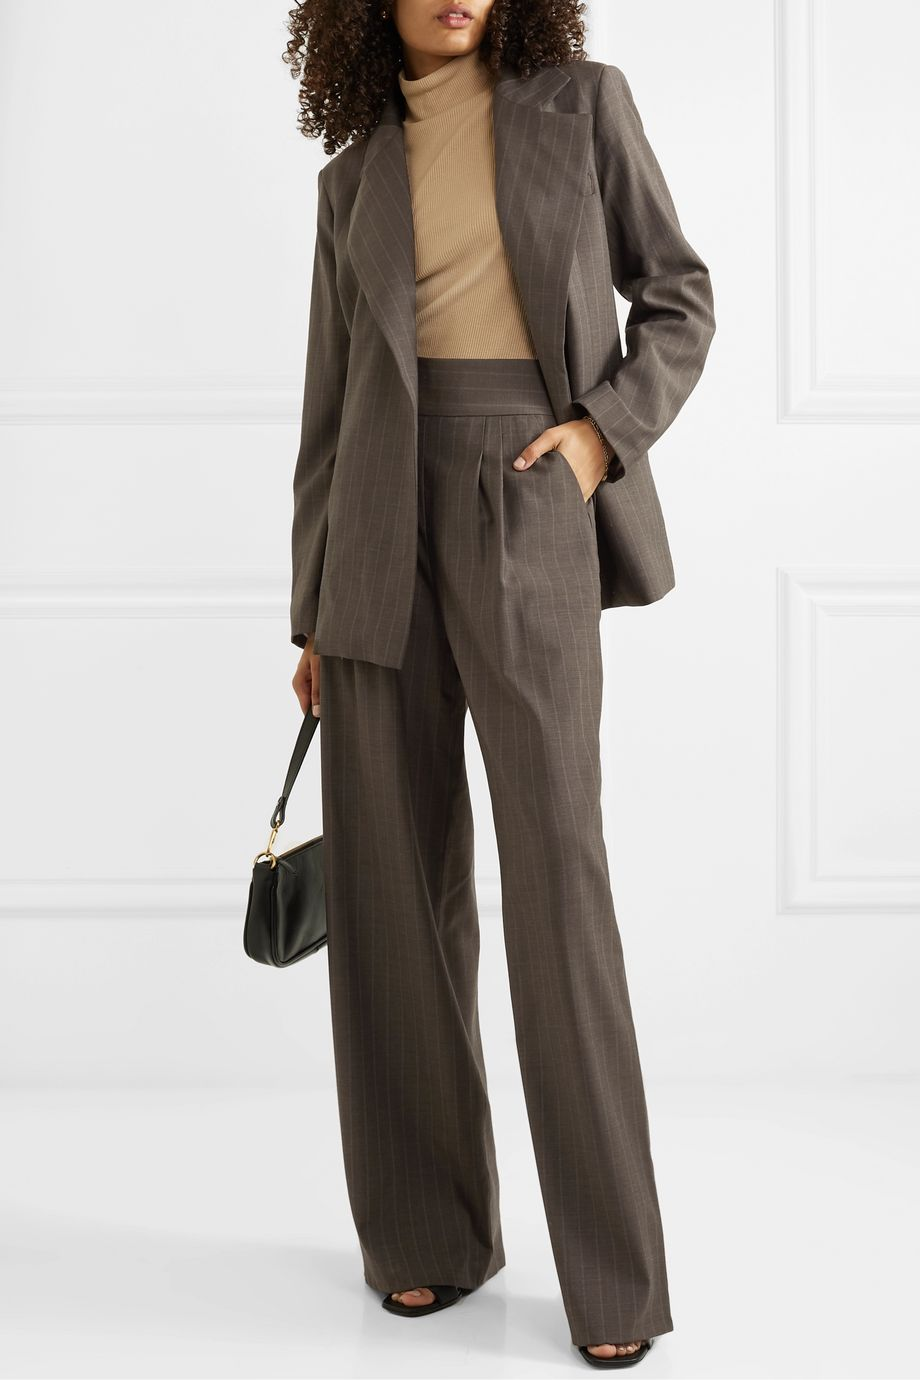 aaizél + NET SUSTAIN pinstriped wool wide-leg pants